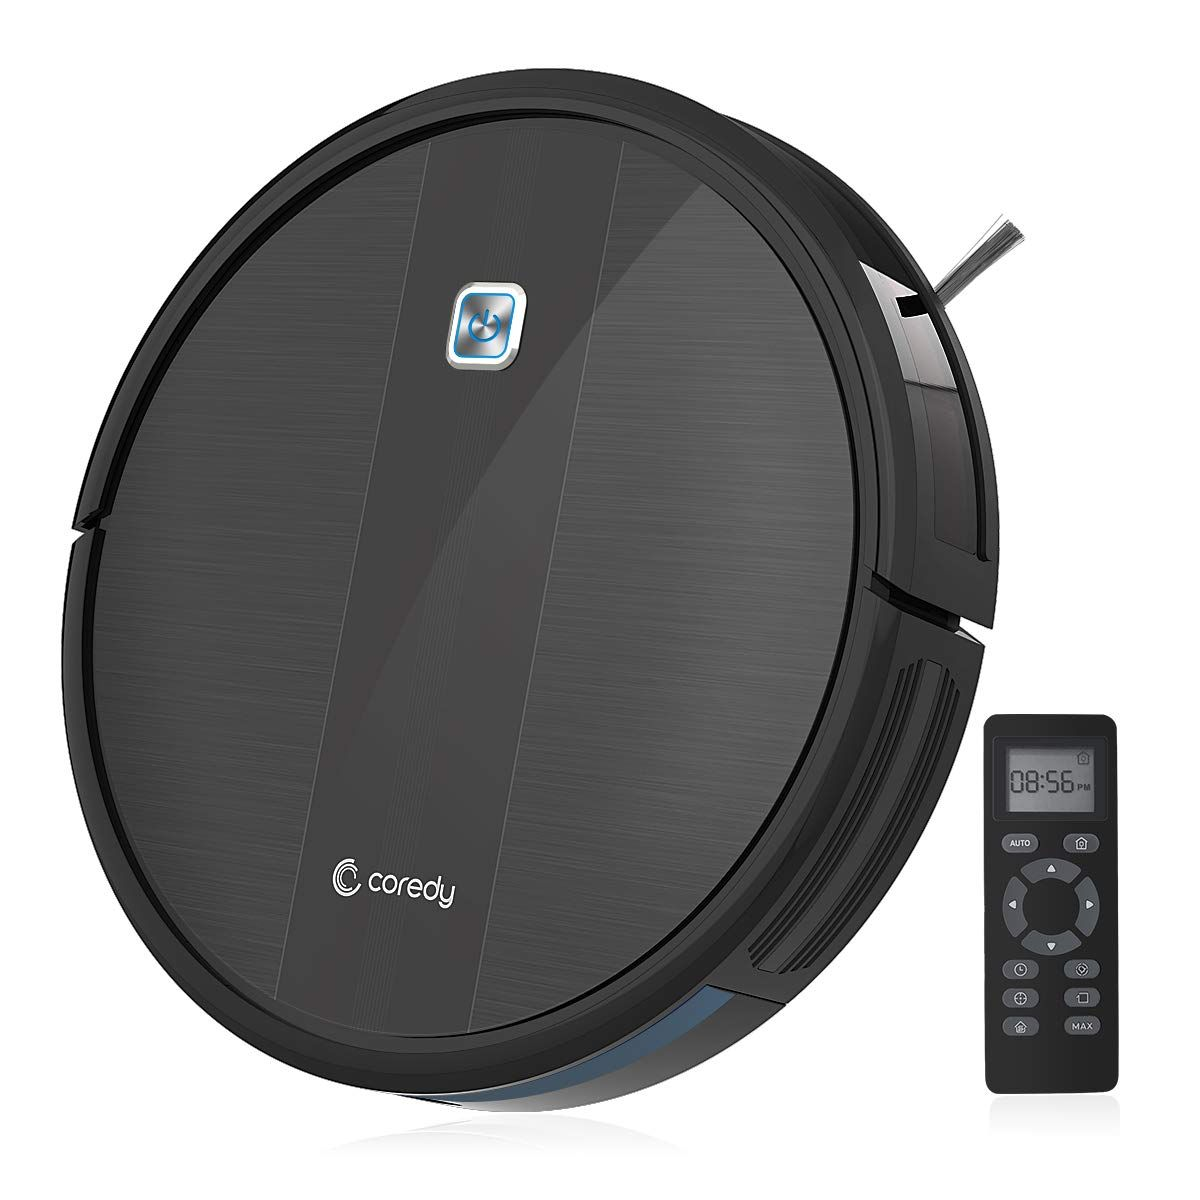 Shop for the Coredy Robot Vacuum Cleaner, 1700Pa Strong